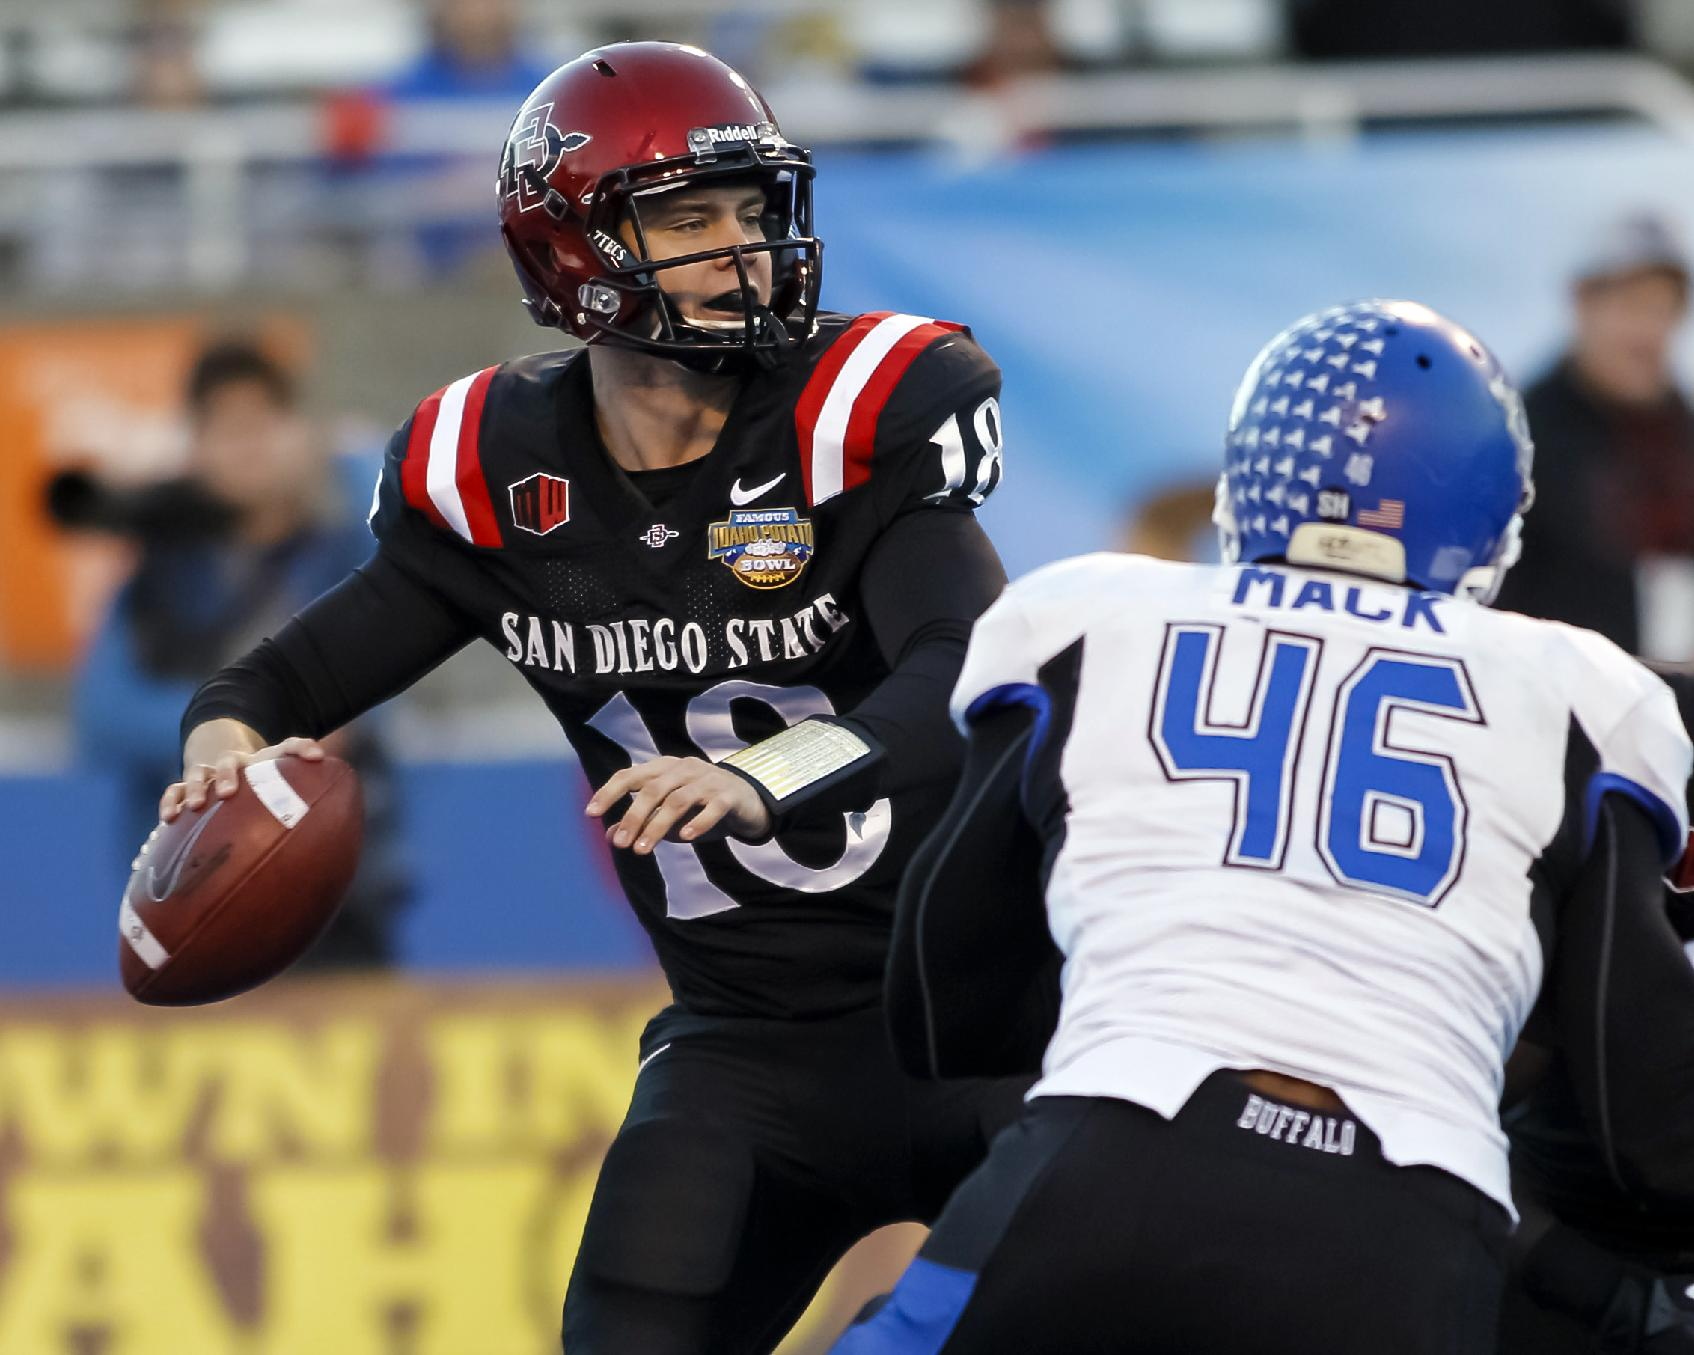 San Diego State quarterback Quinn Kaehler (18) looks for a receiver during the first half of the Famous Idaho Potato Bowl NCAA college football game against San Diego State in Boise, Idaho, on Saturday, Dec. 21, 2013